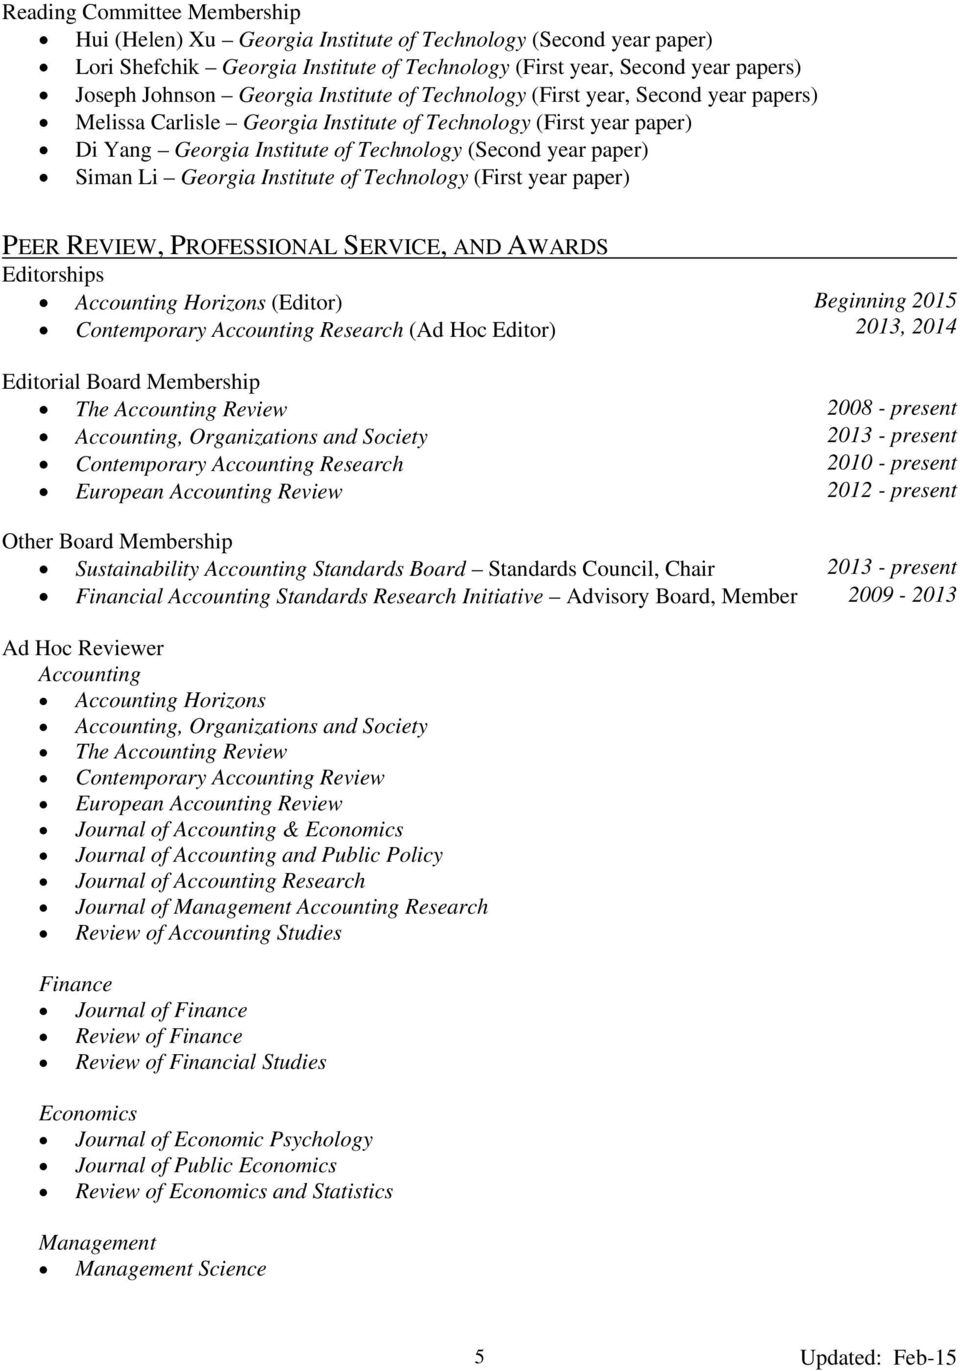 Georgia Institute of Technology (First year paper) PEER REVIEW, PROFESSIONAL SERVICE, AND AWARDS Editorships Accounting Horizons (Editor) Contemporary Accounting Research (Ad Hoc Editor) Beginning